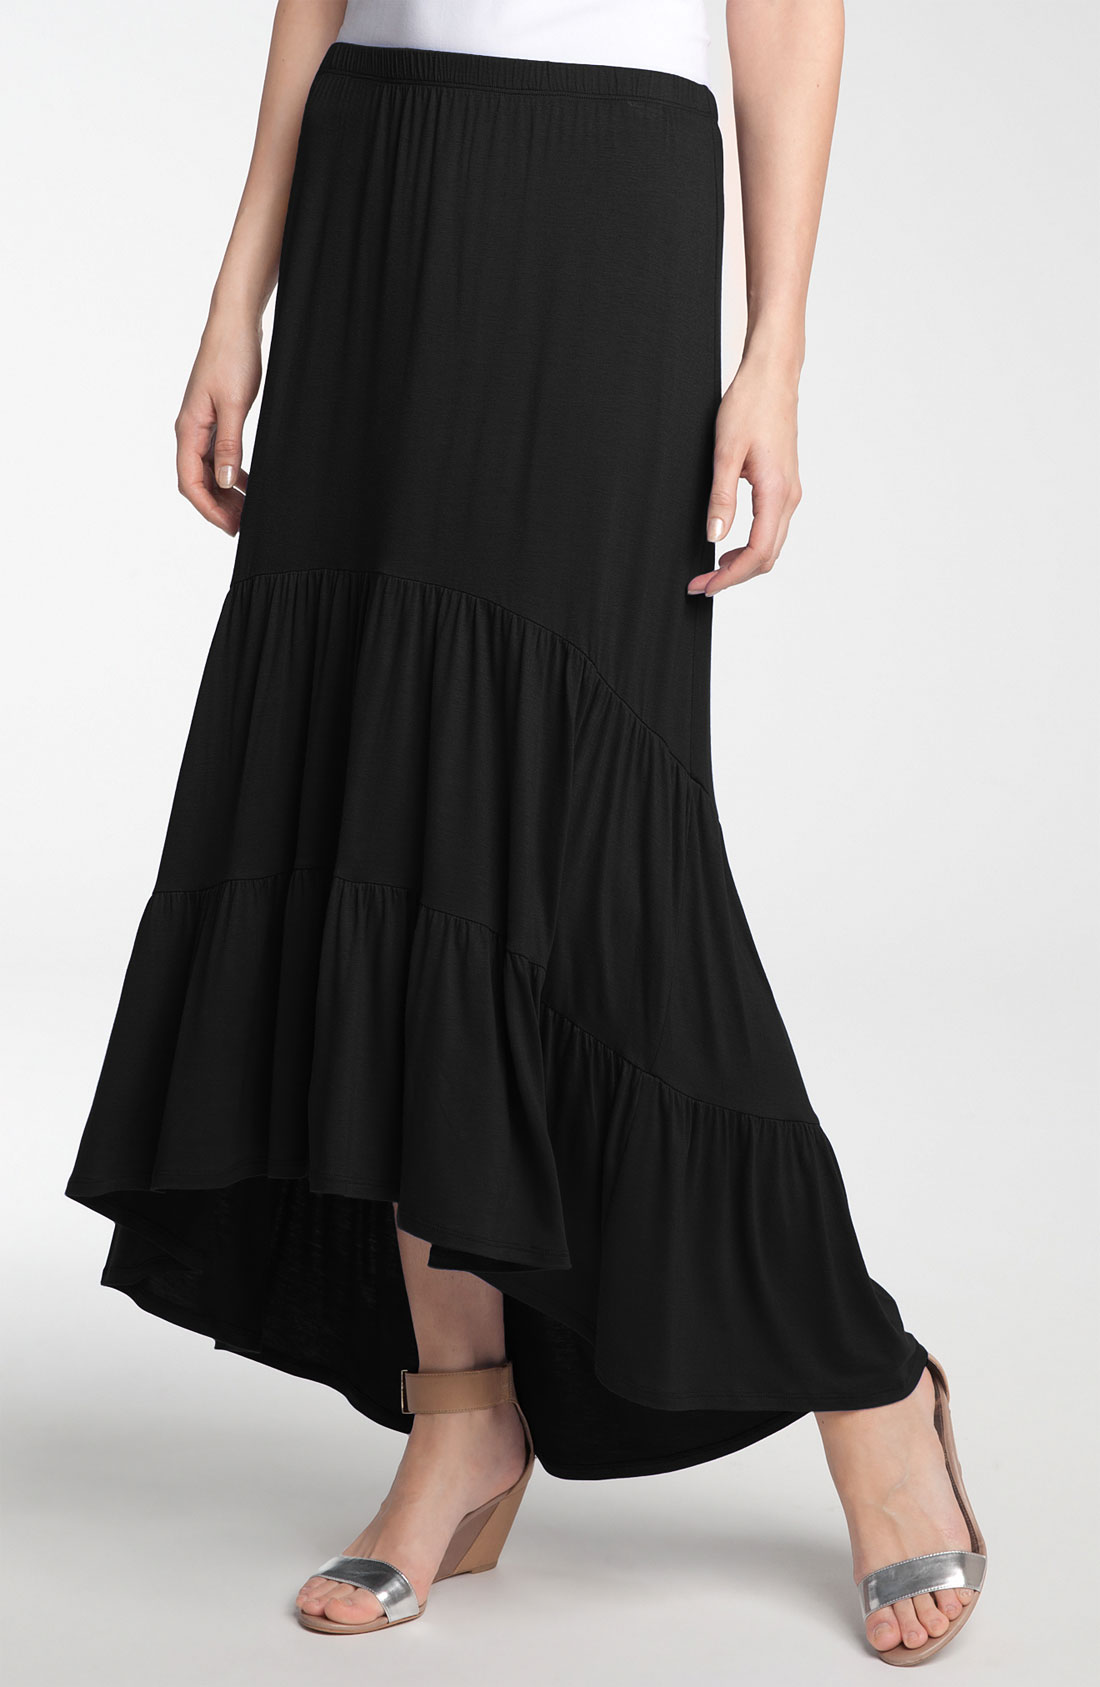 Olivia Moon Tiered Knit Maxi Skirt with High Low Hem in Black  Lyst